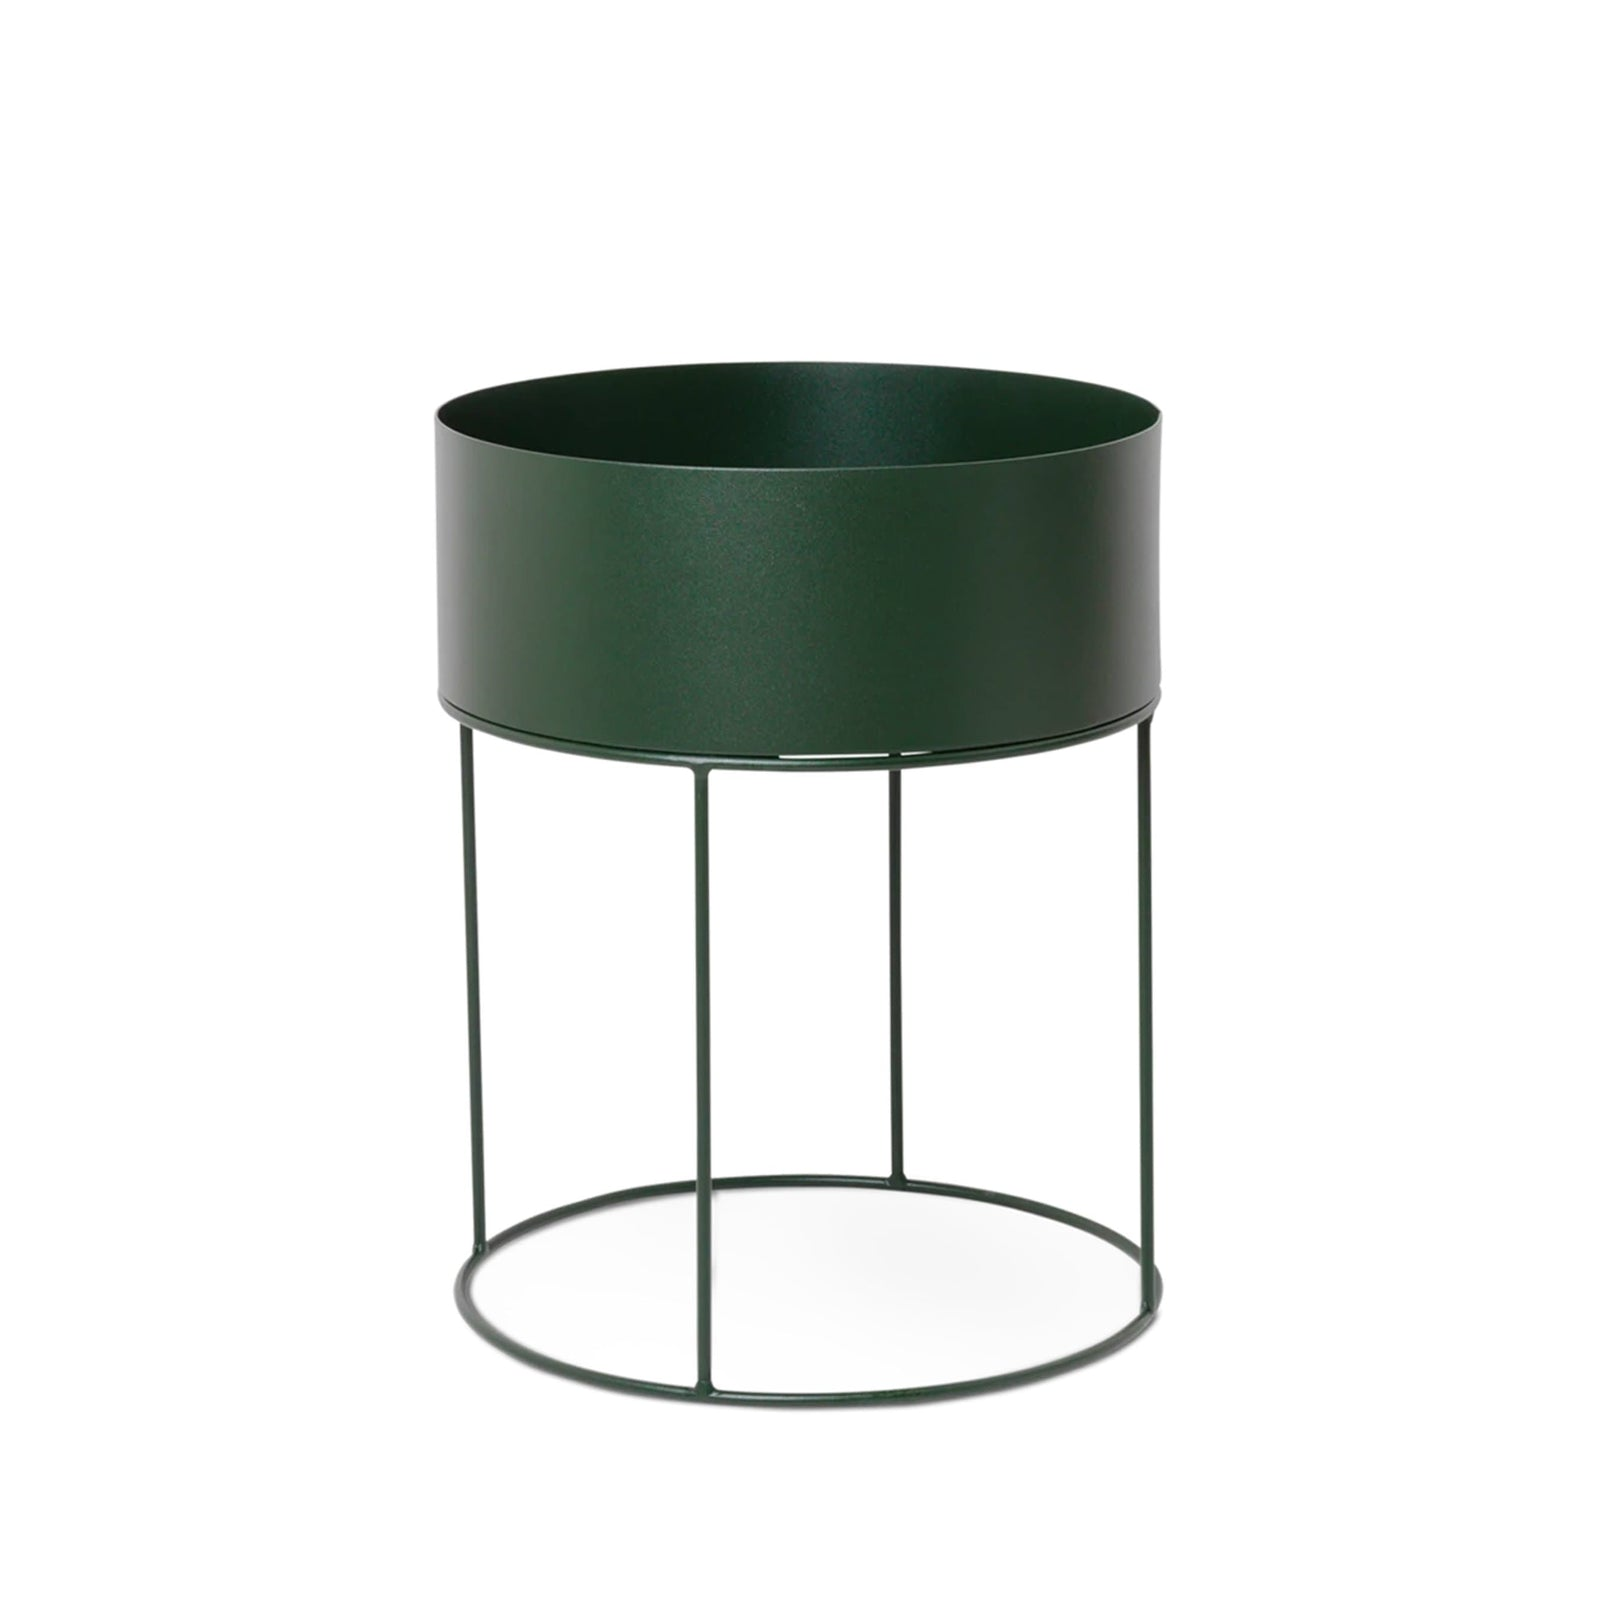 Ferm Living Pottery Dark Green Plant Box - Round